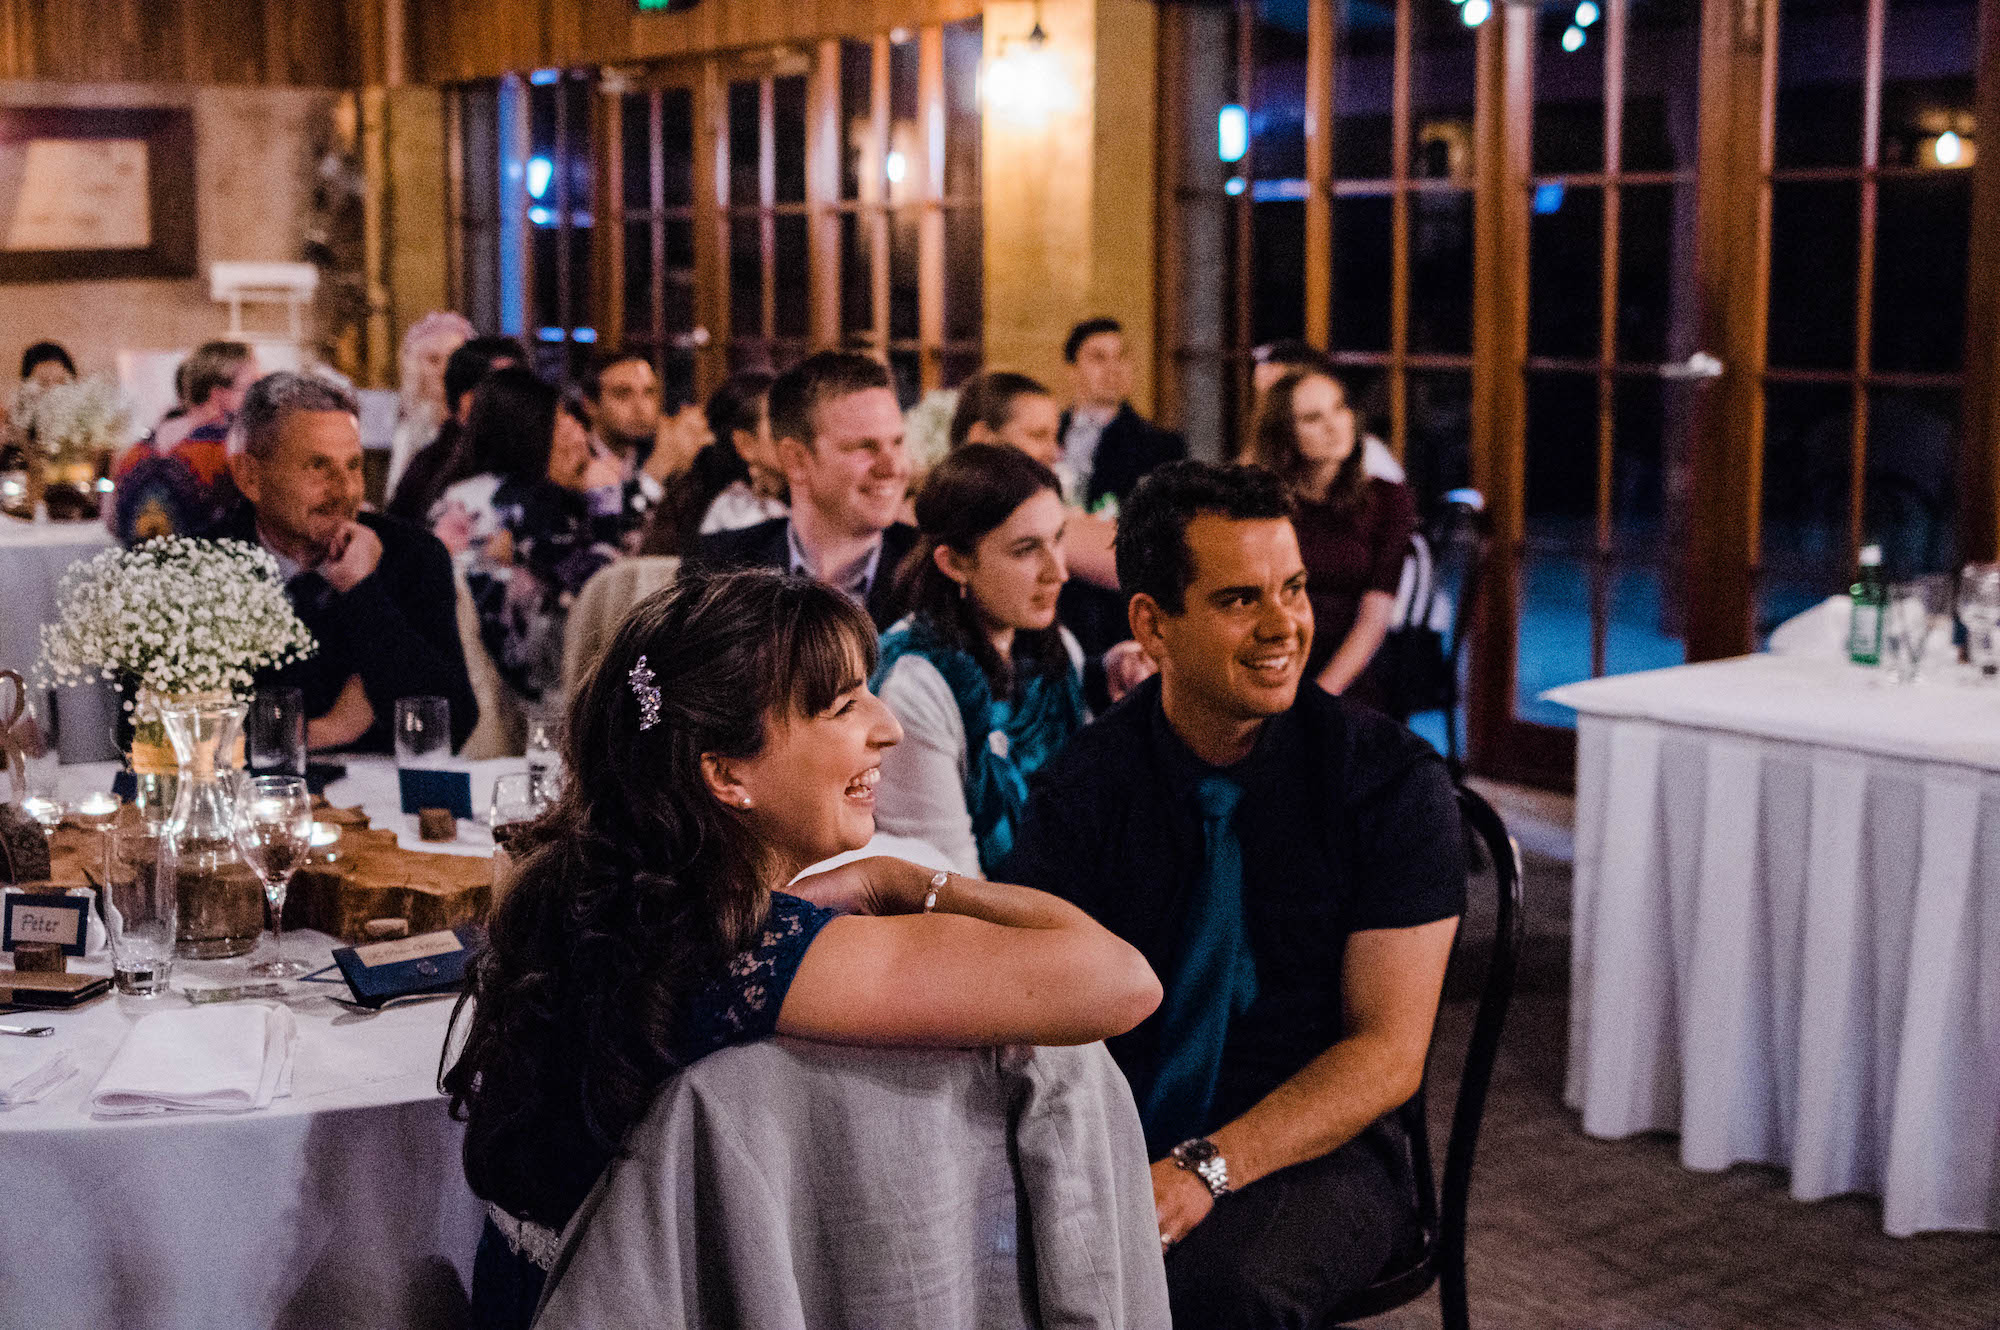 Guests laugh together during speeches at a Quarry Farm wedding.